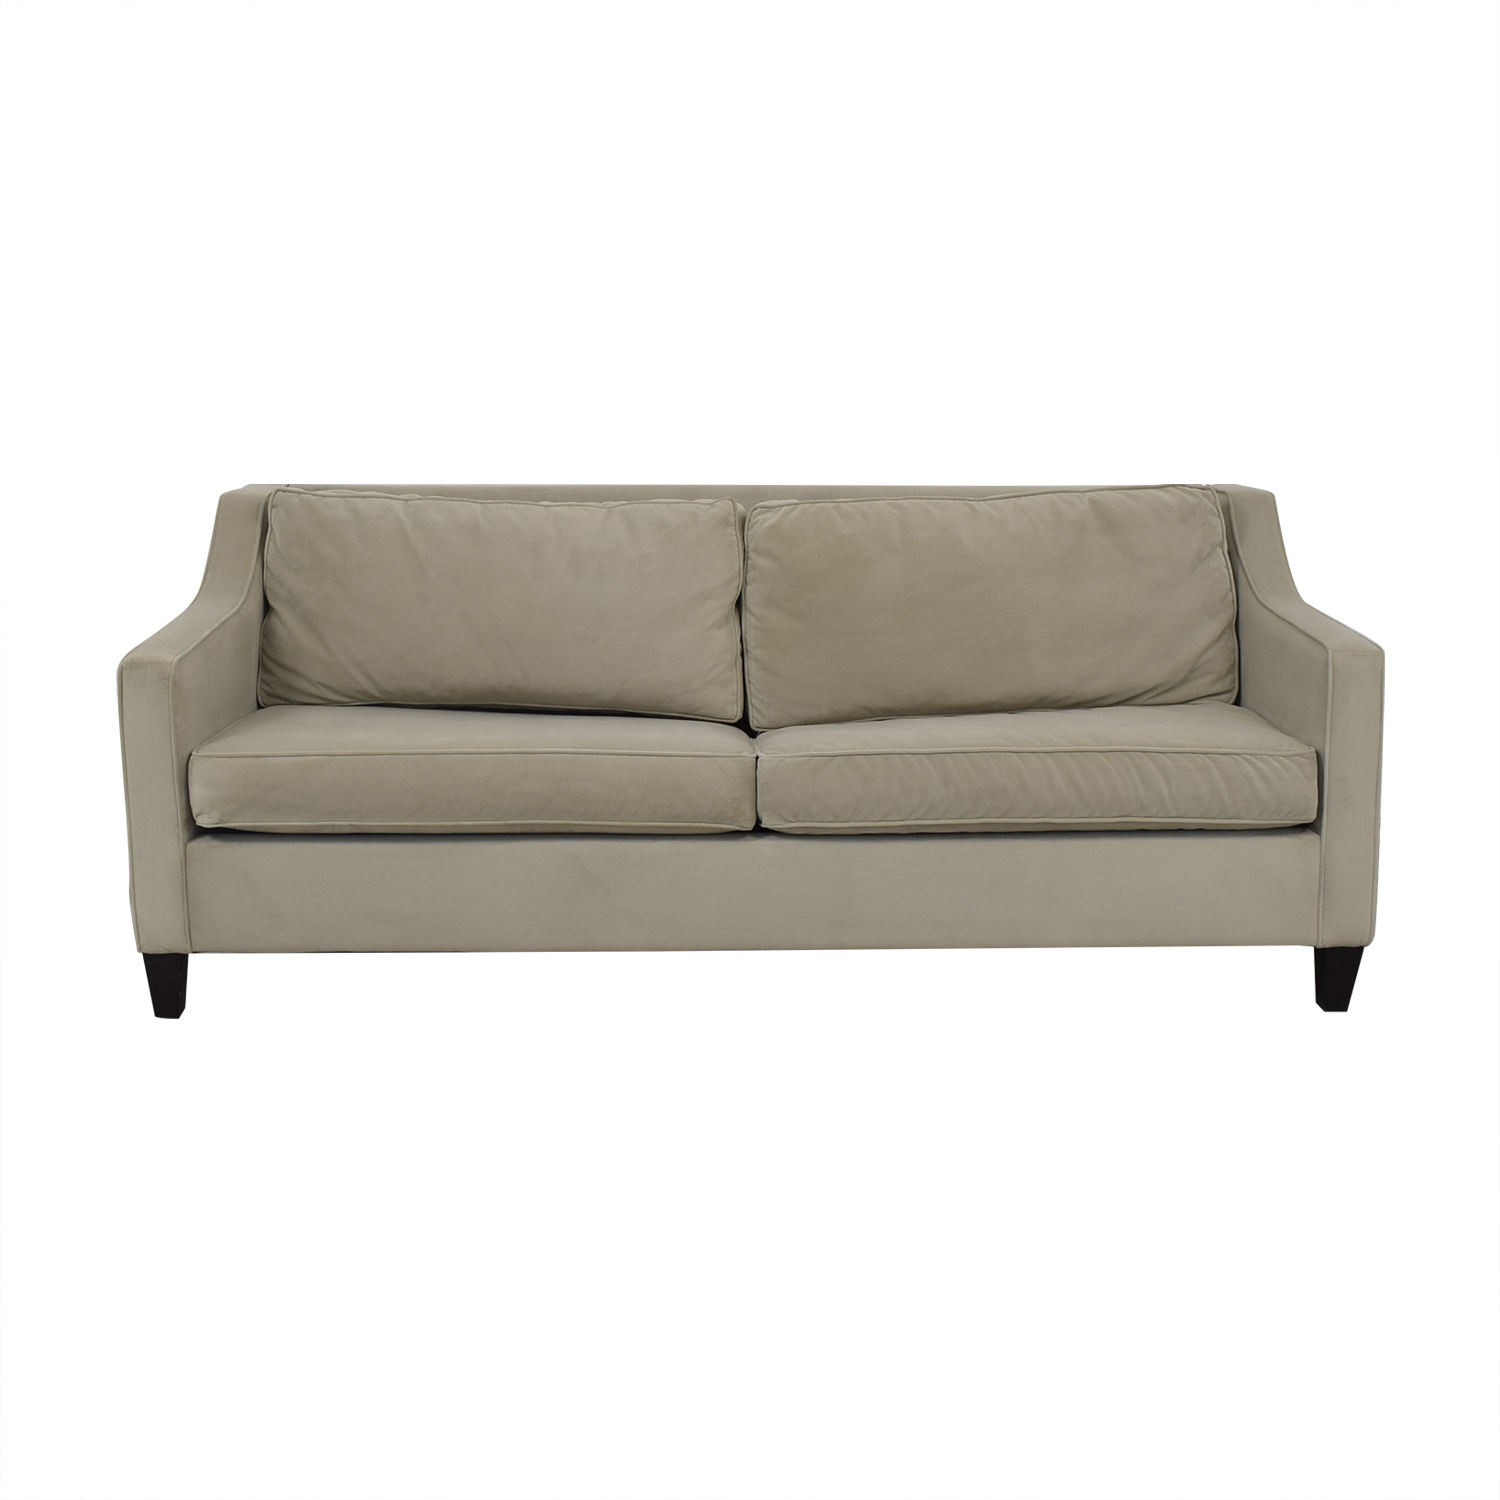 buy West Elm Henry Deluxe Queen Sleeper Sofa West Elm